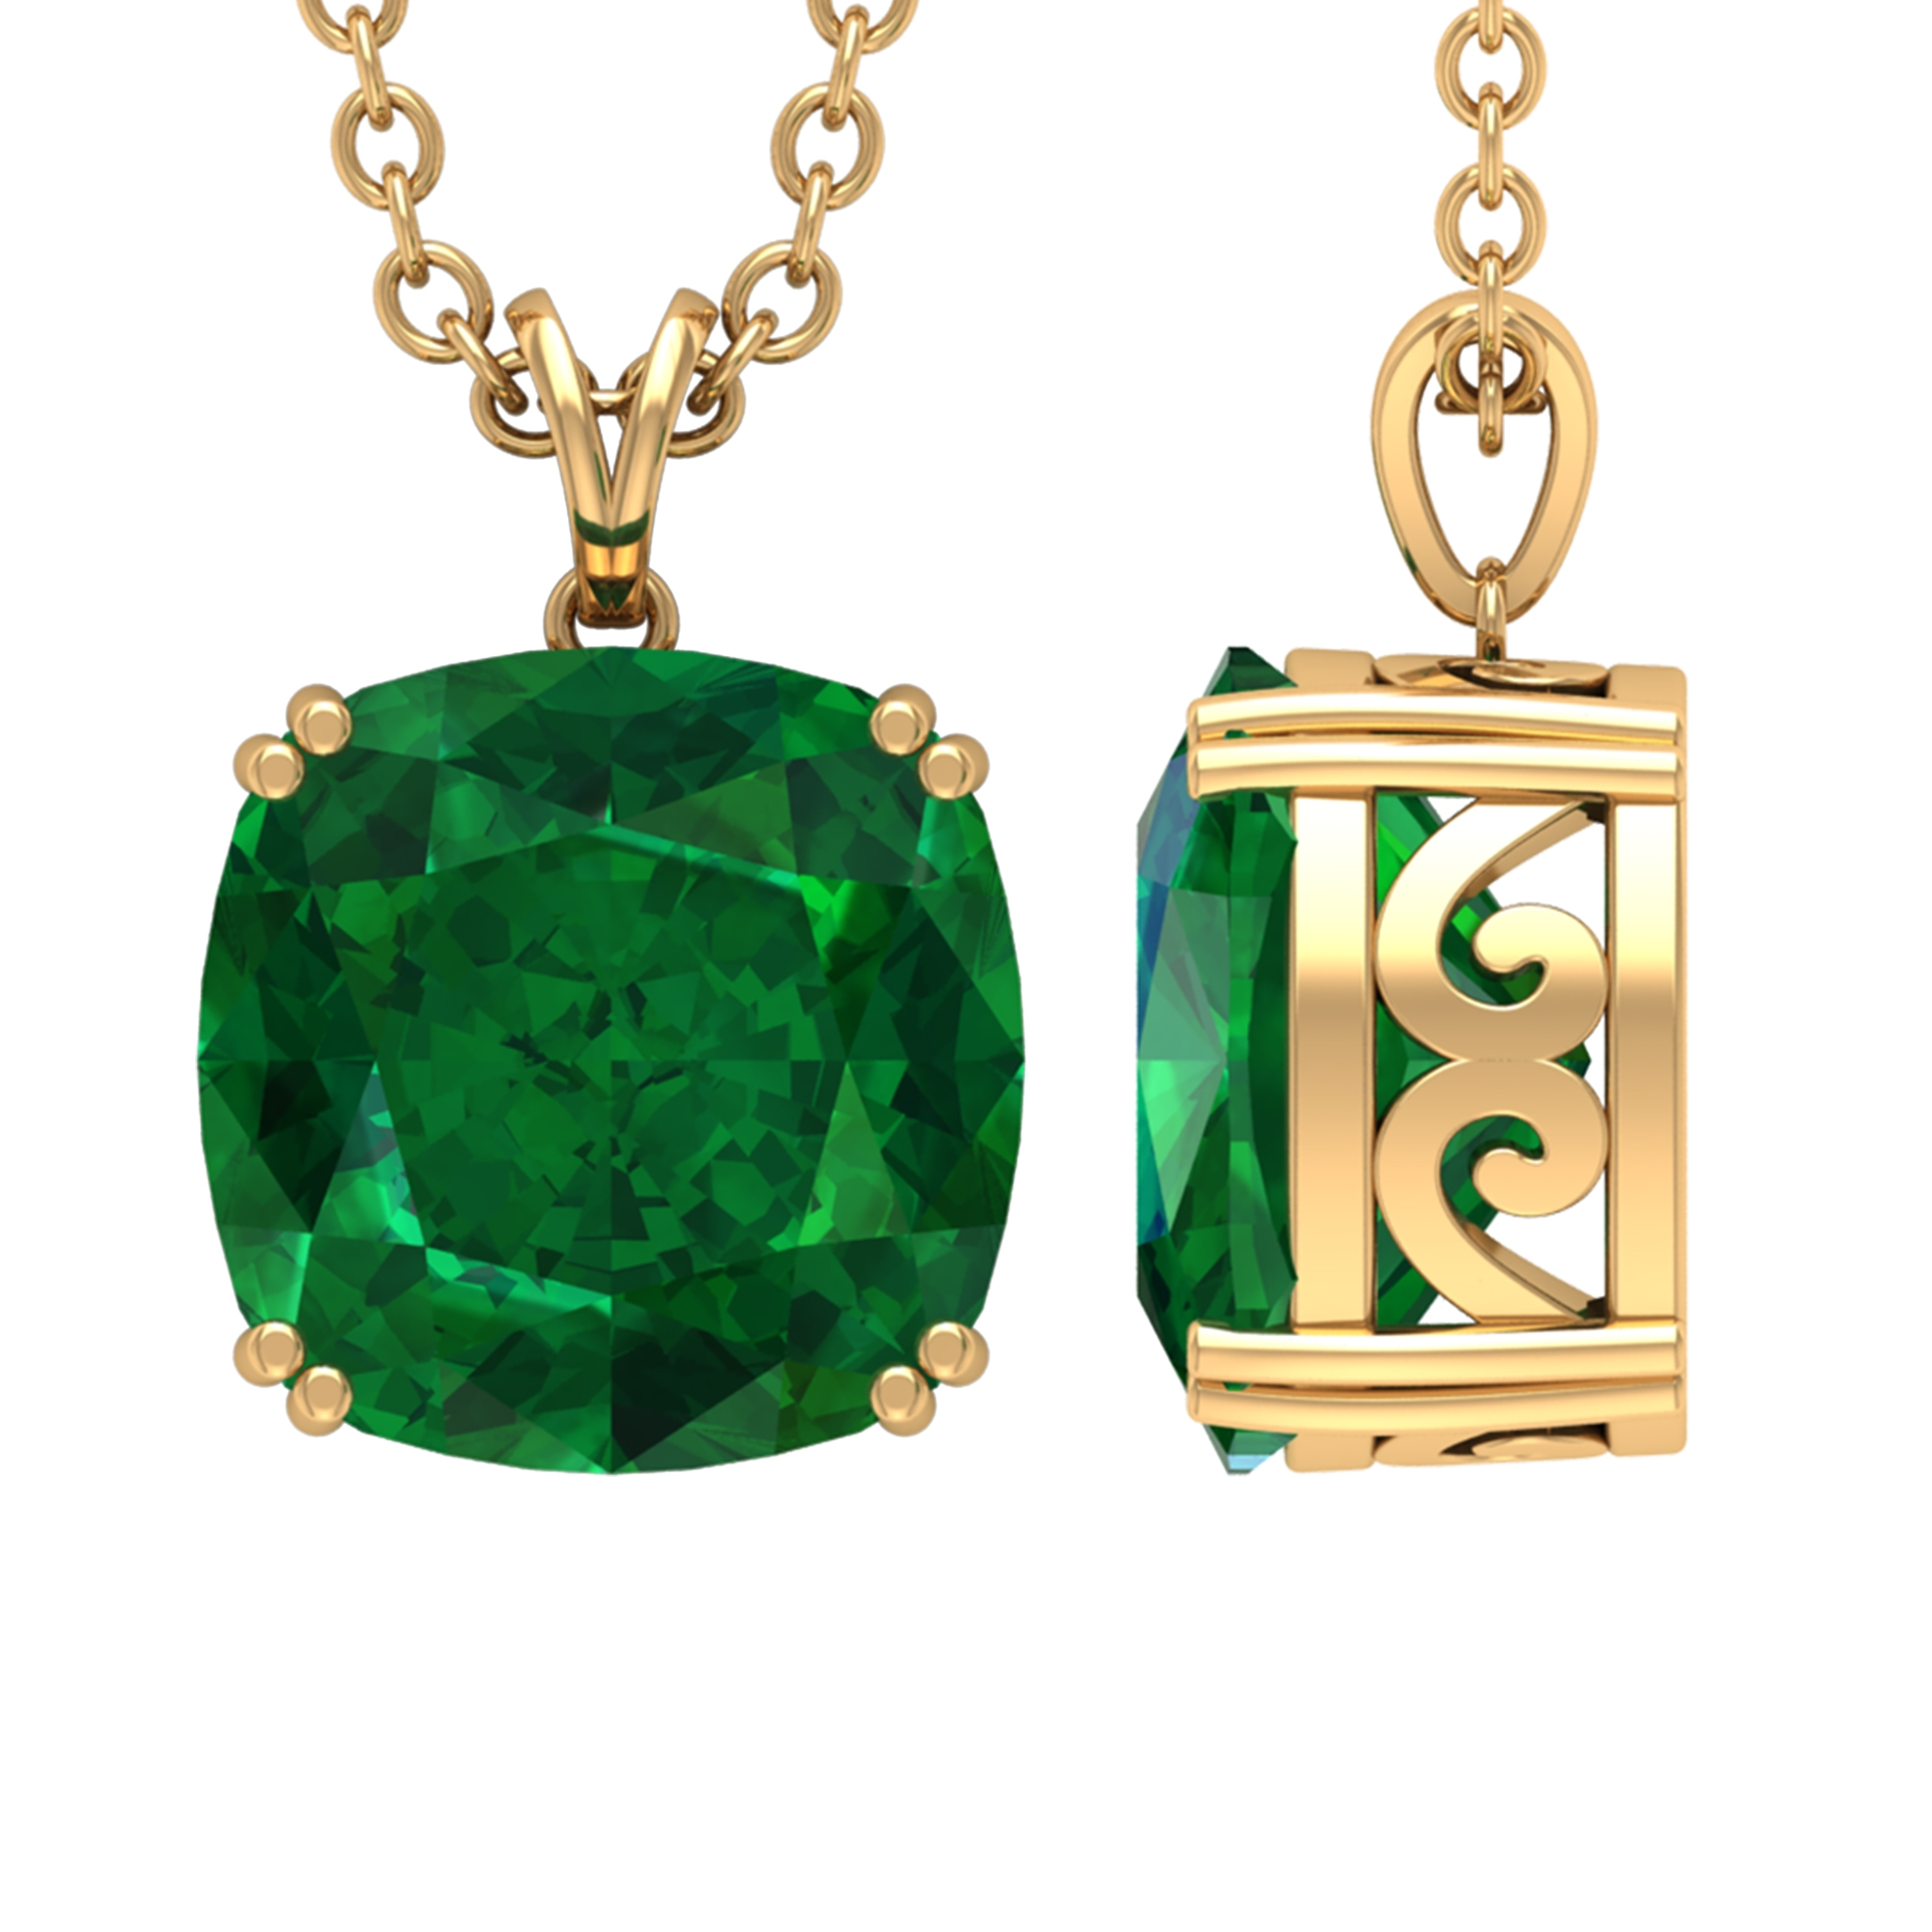 8 MM Cushion Cut Emerald Solitaire Pendant in Double Prong Setting with Rabbit Ear Bail